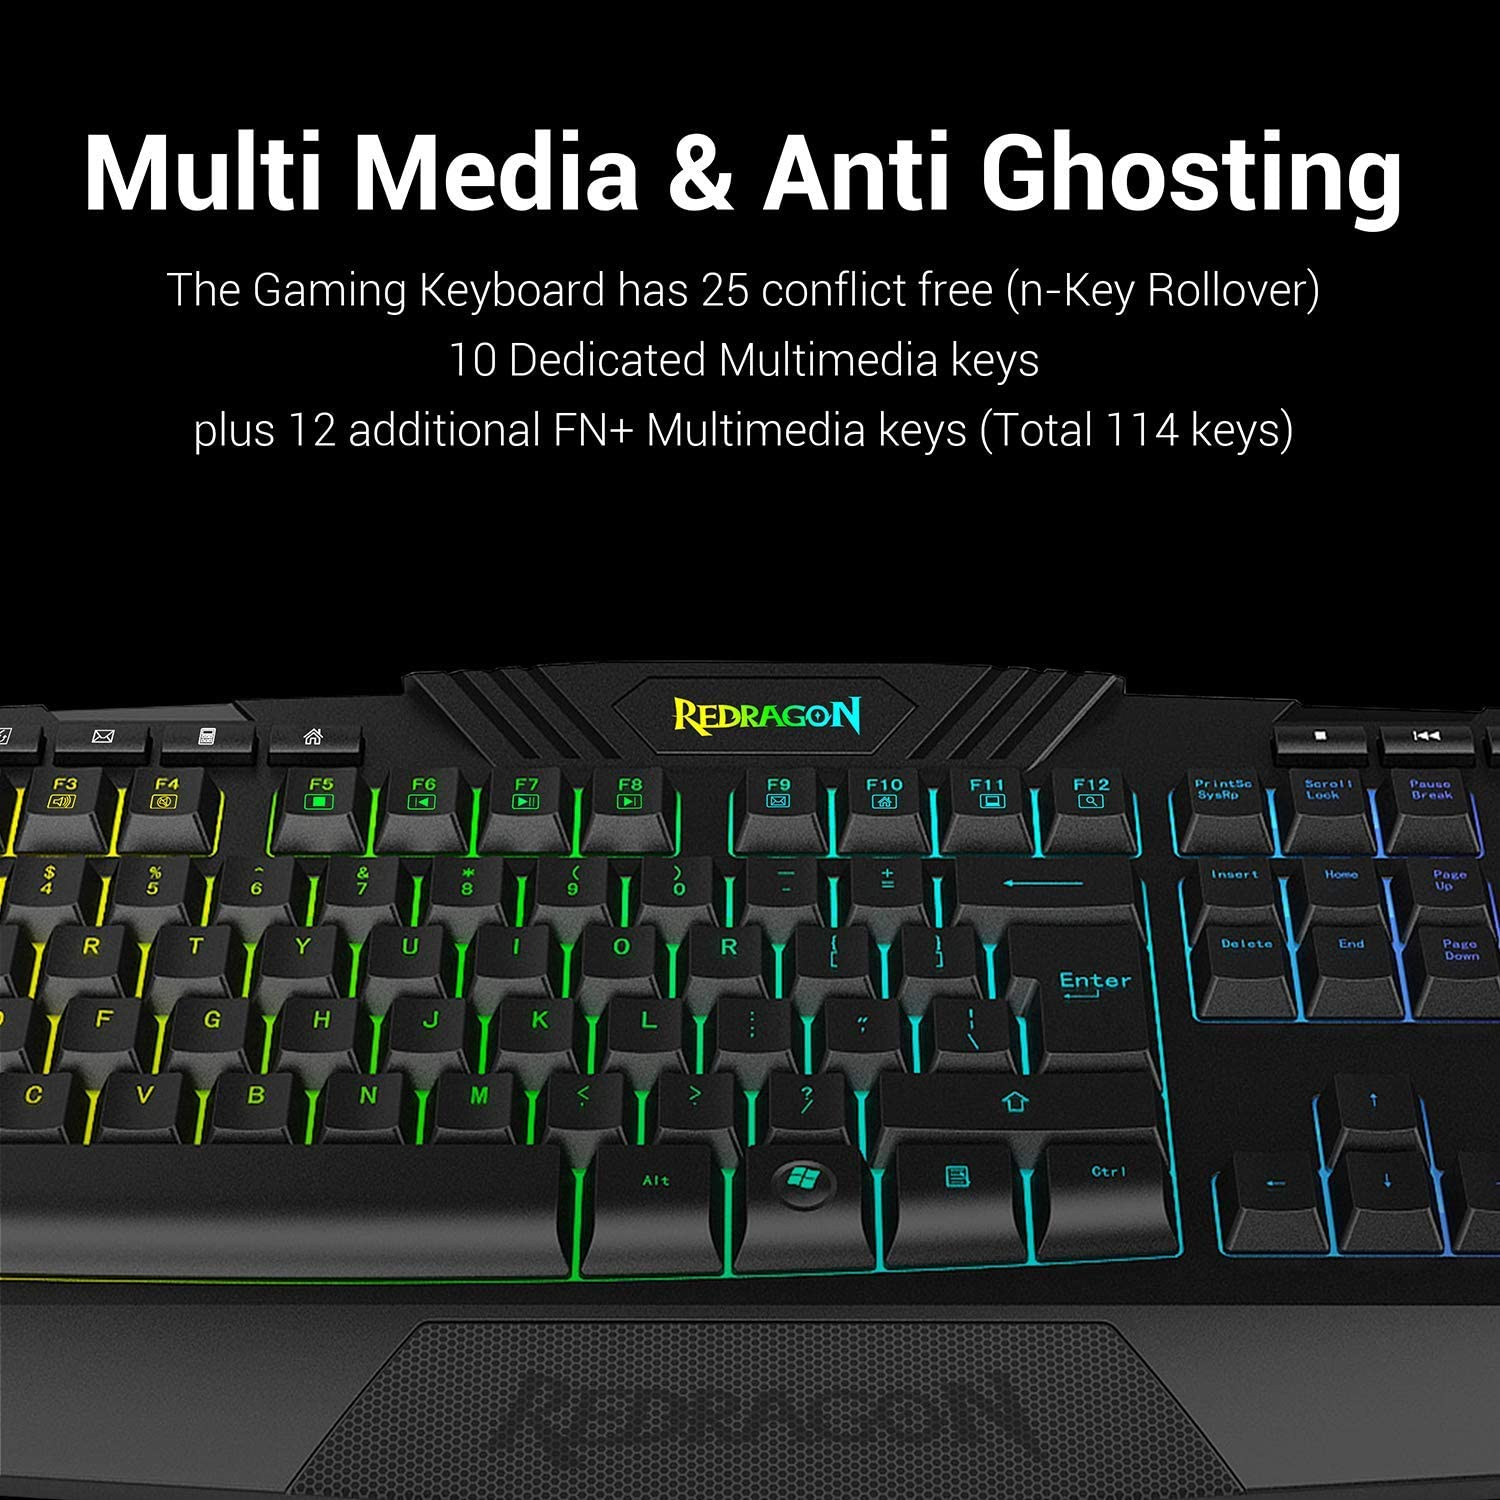 Redragon S101 Wired Gaming Keyboard and Mouse Combo RGB Backlit Gaming Keyboard with Multimedia Keys Wrist Rest and Red Backlit Gaming Mouse 3200 DPI for Windows PC Gamers (Black)